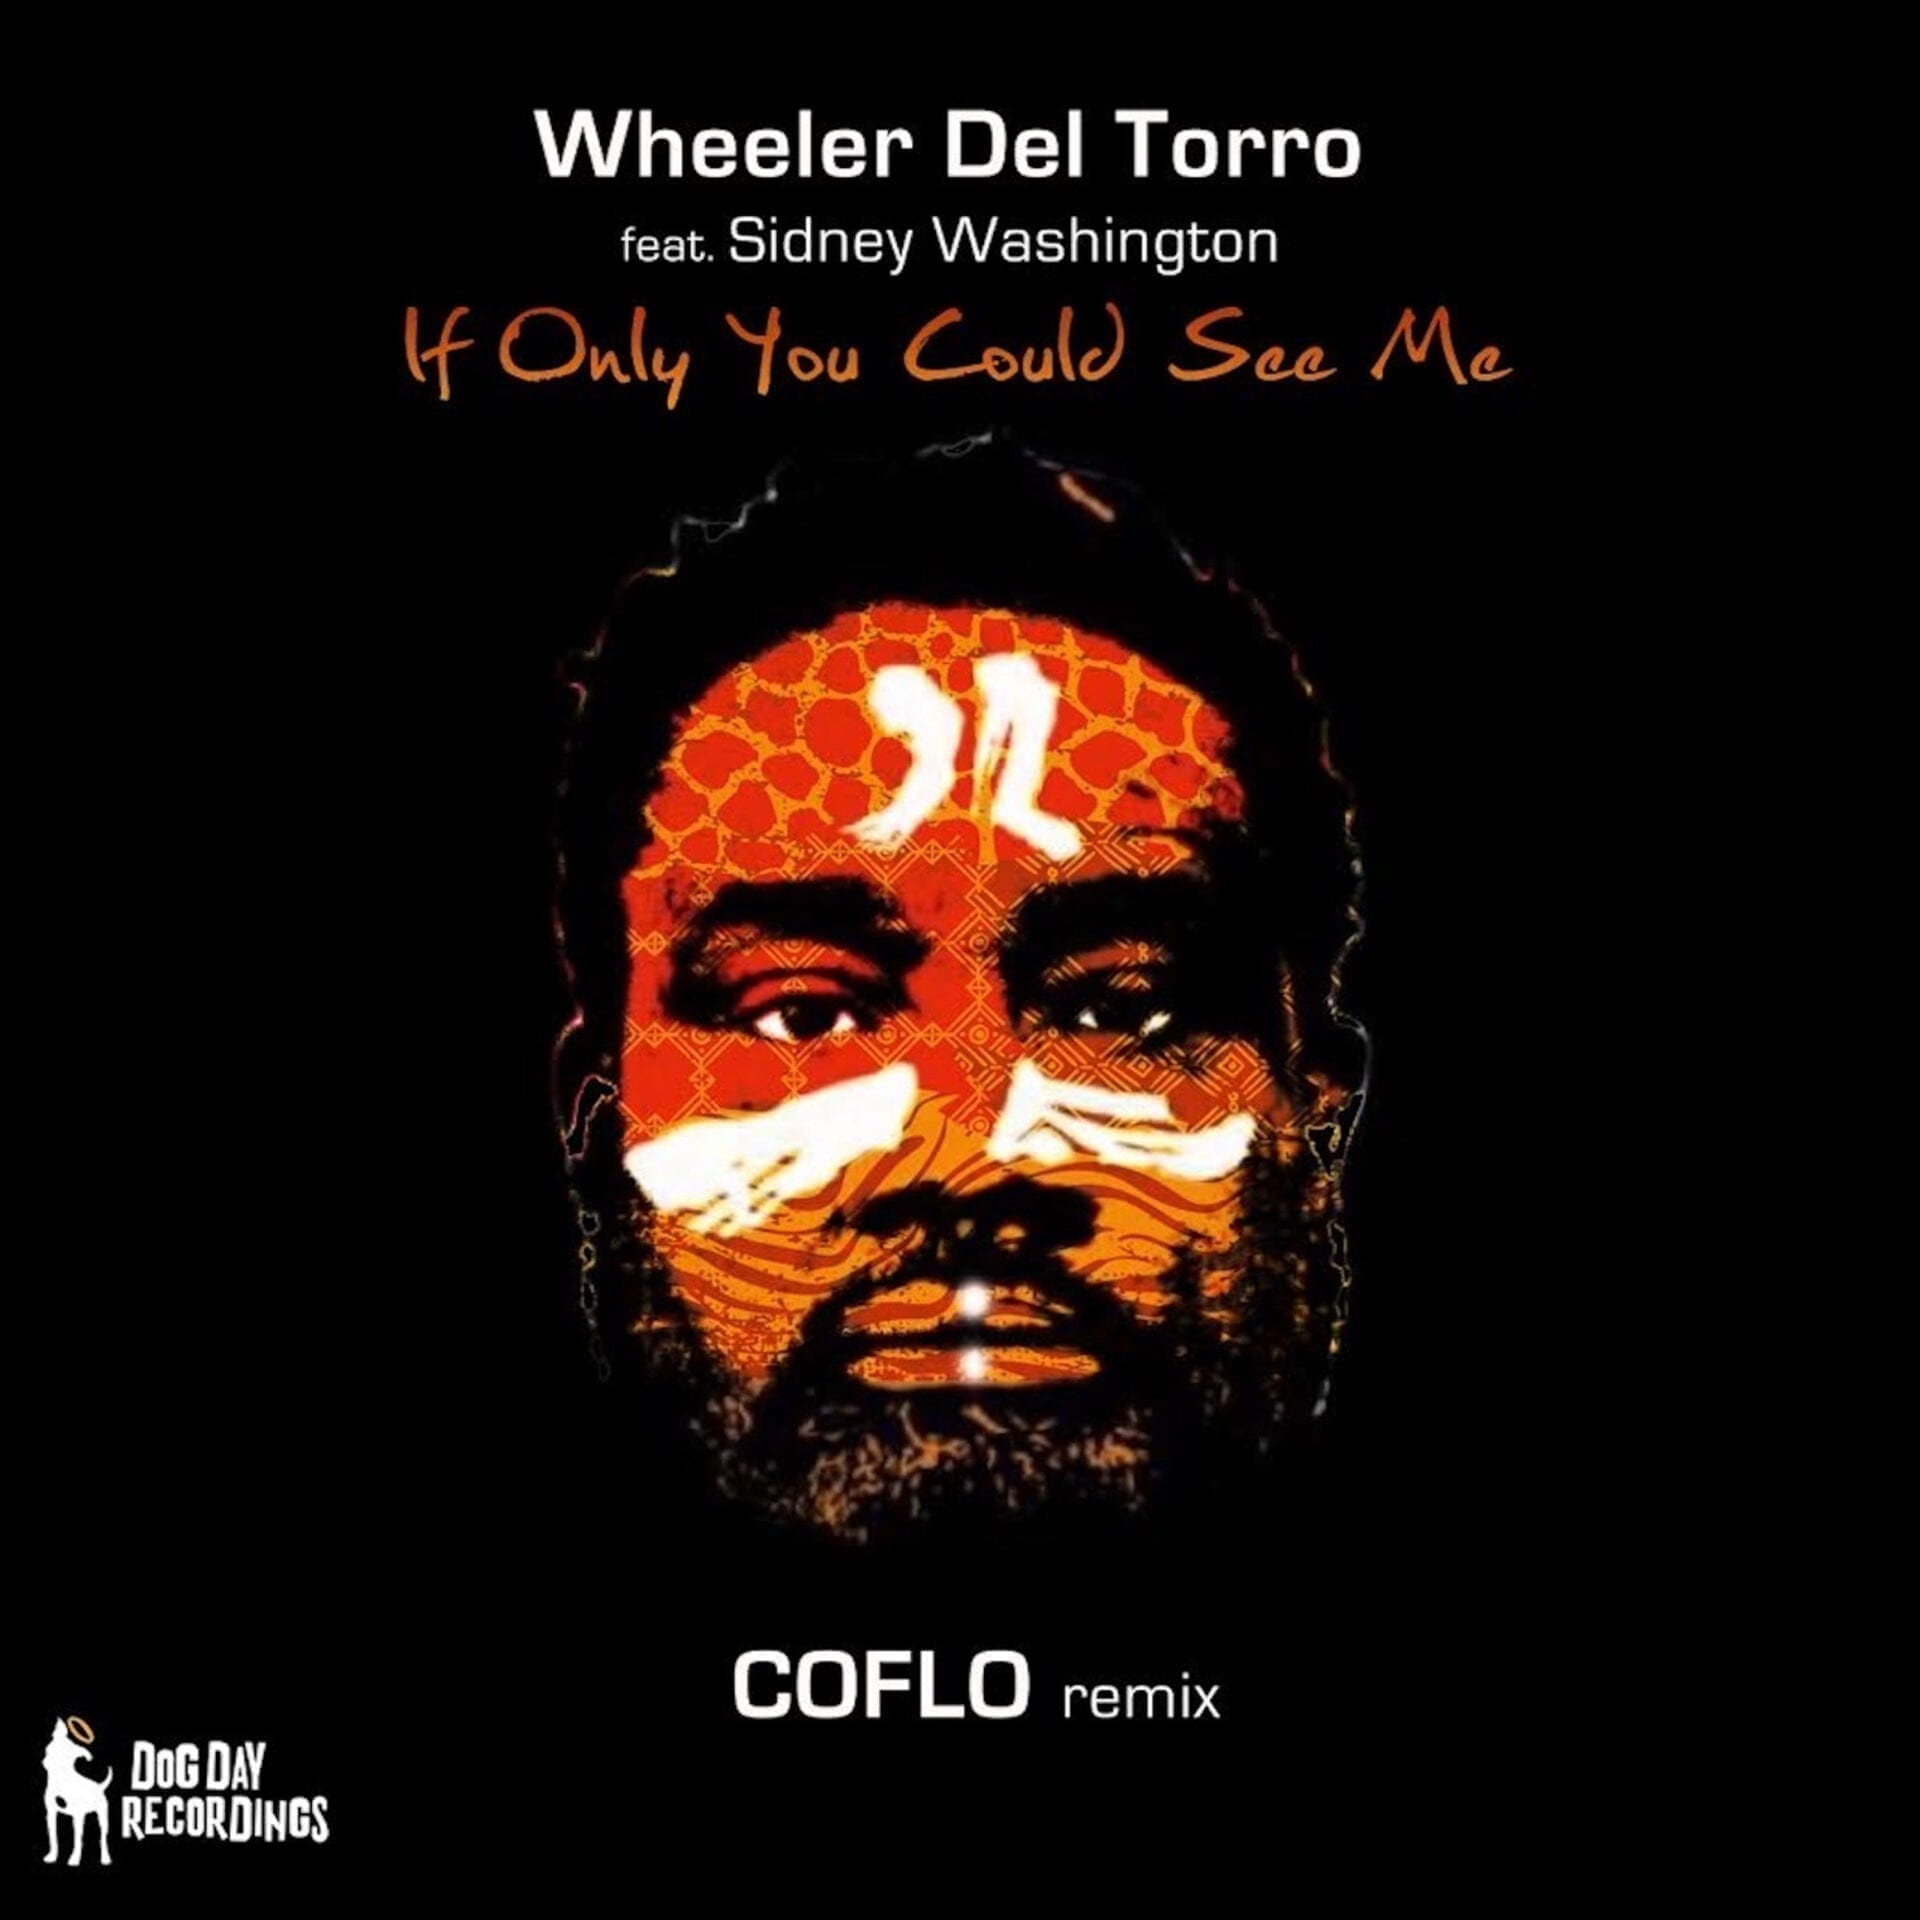 Wheeler del Torro Ft. Sidney Washington -'If Only You Could See Me' (Coflo Remix) [Dog Day Recordings]